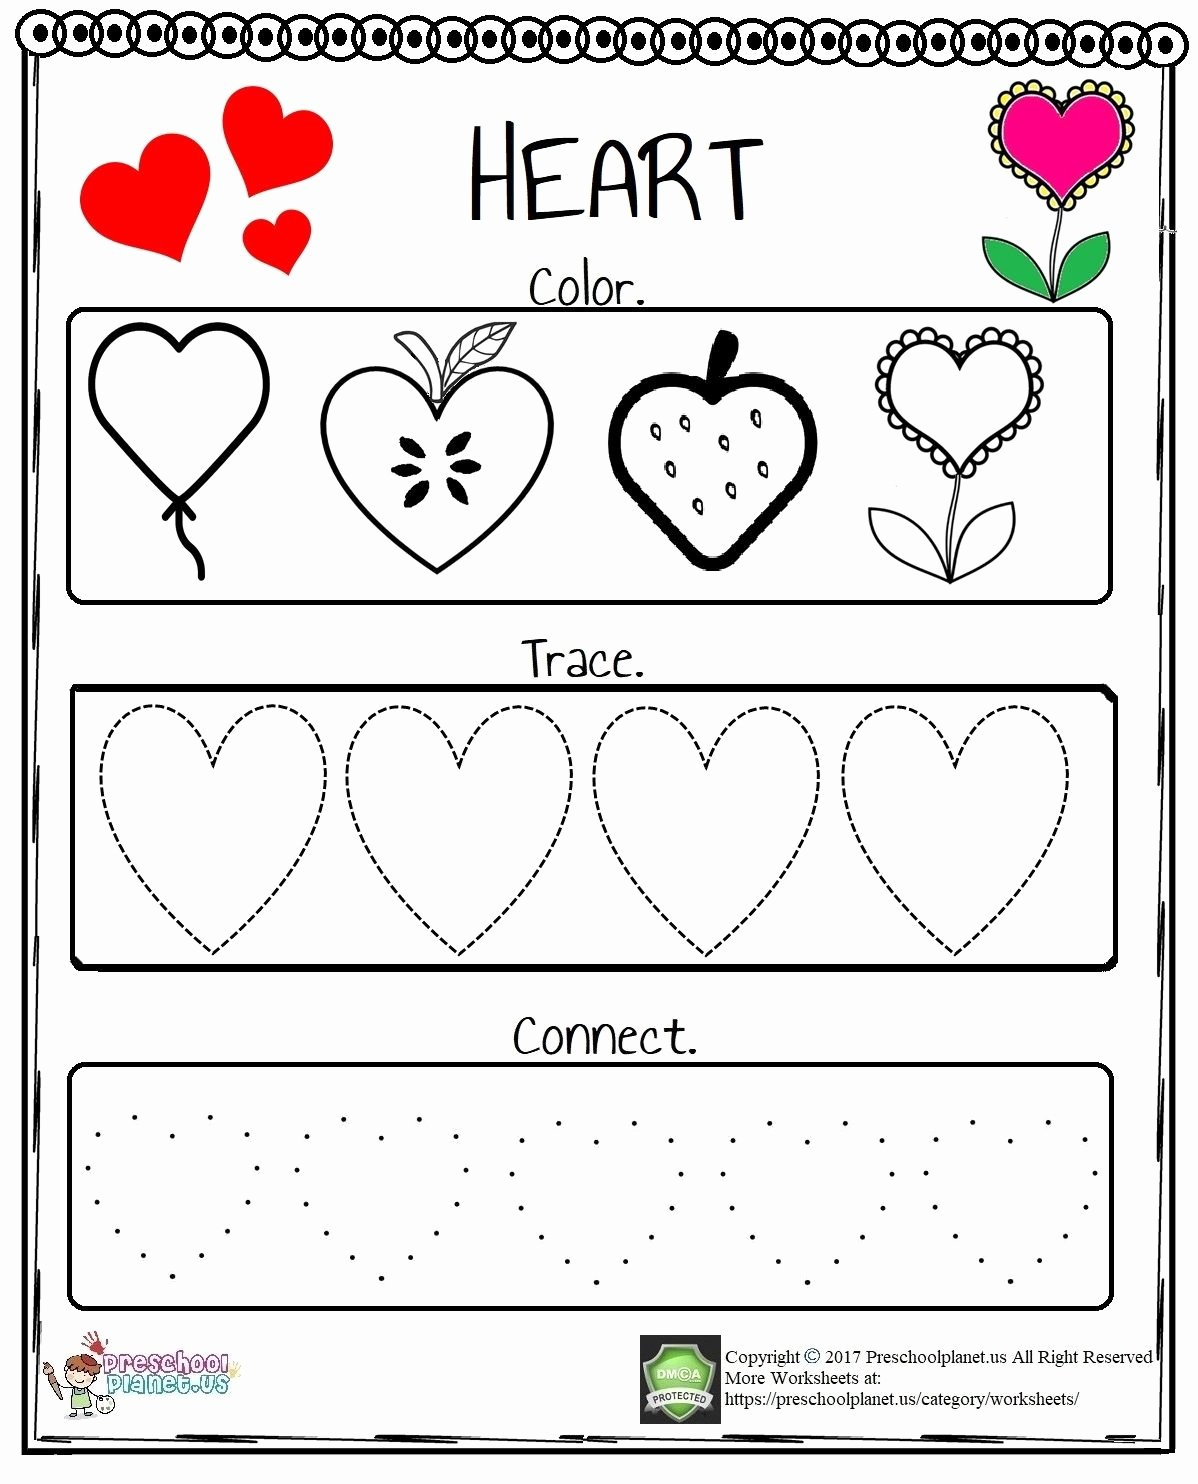 Heart Shape Worksheets for Preschoolers Unique Heart Worksheet In 2020